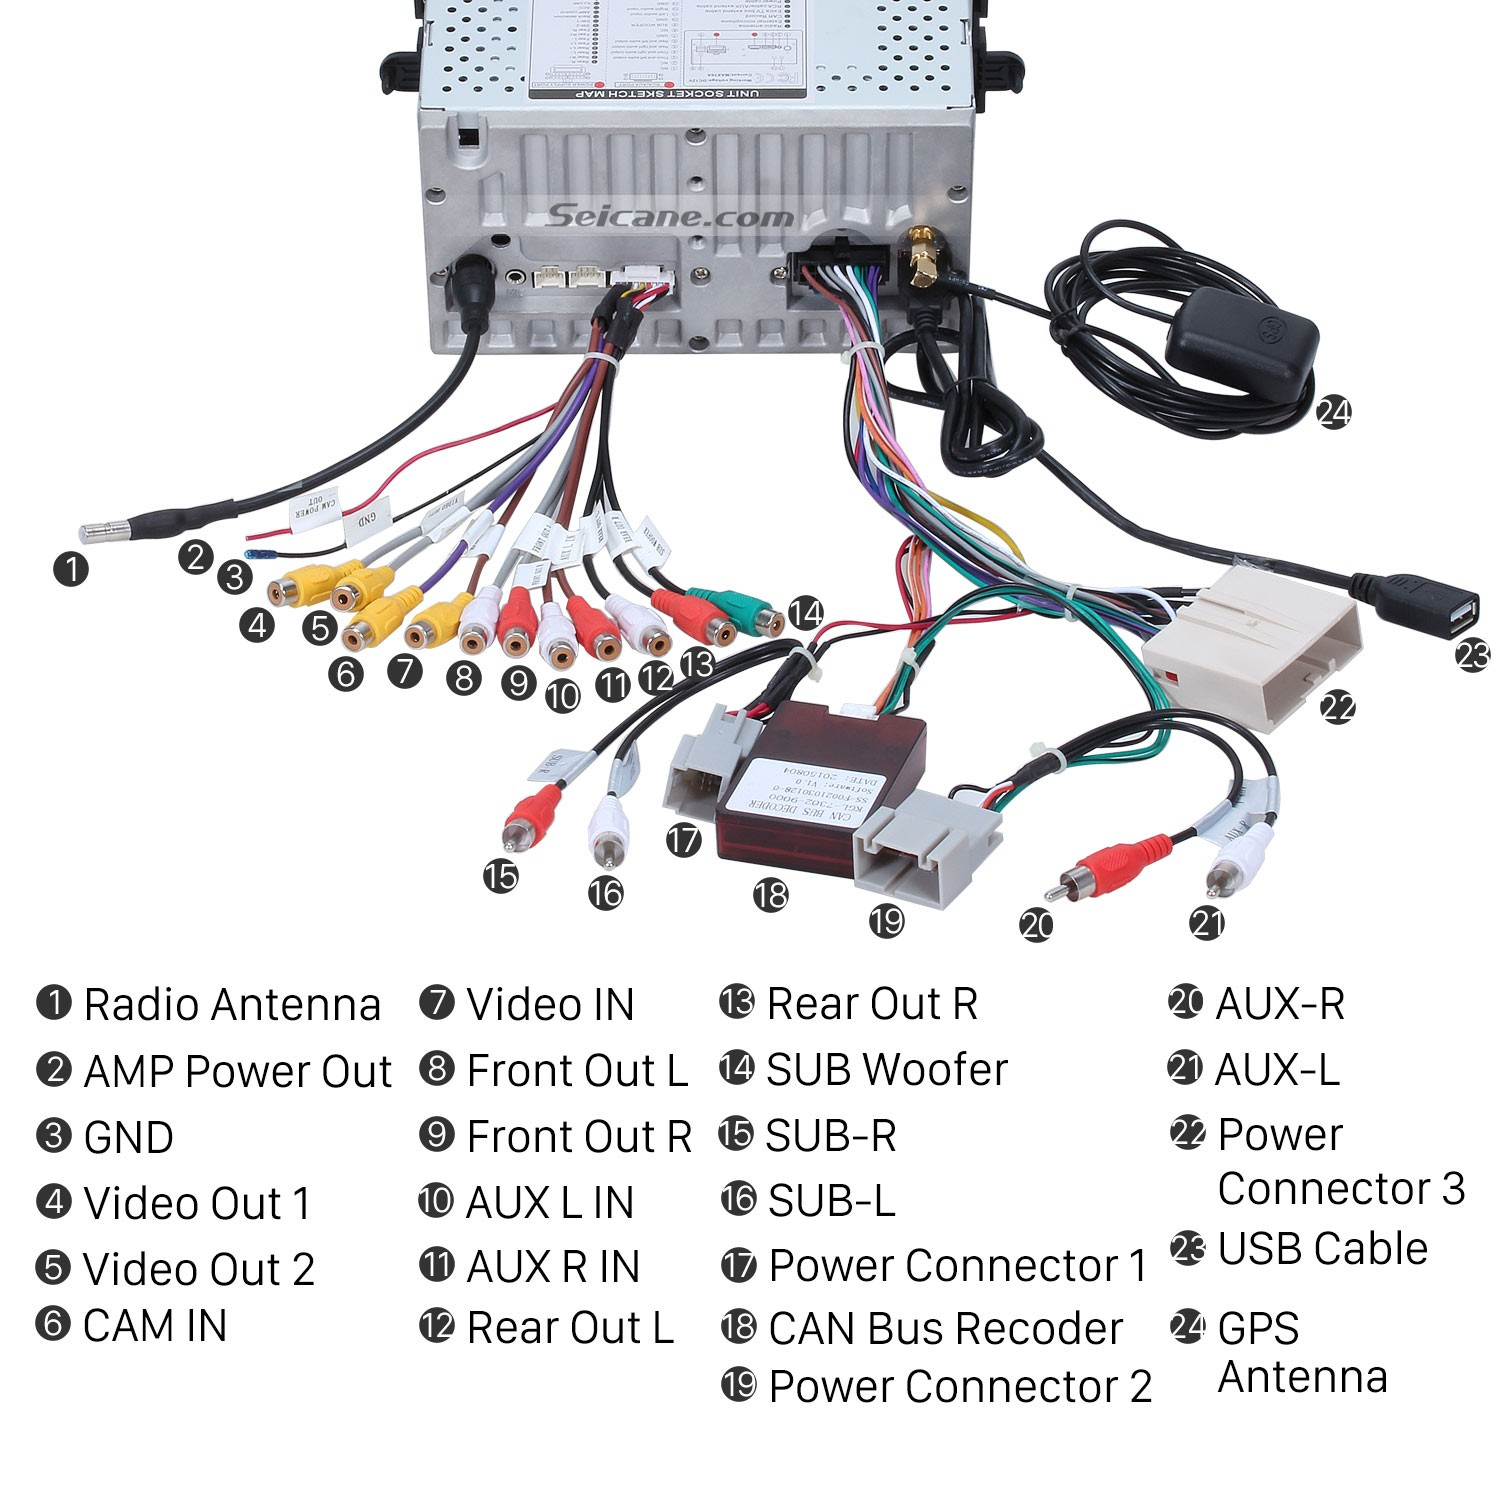 2004 ford f250 stereo wiring diagram drayton zone valve how to effectively install a 2014 f150 f350